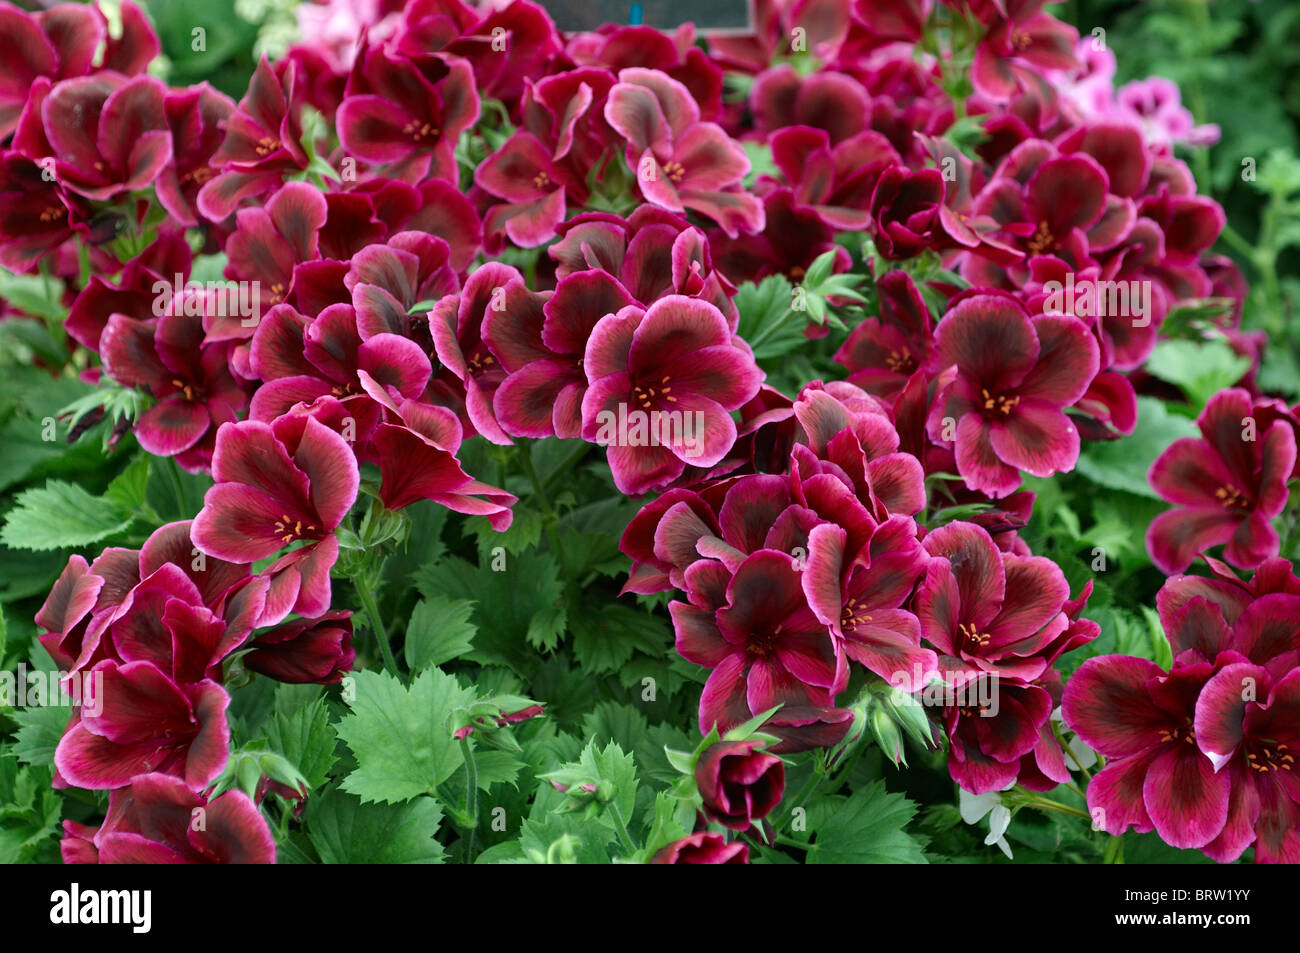 Pelargonium Flowers Close Up In An English Country Garden Stock